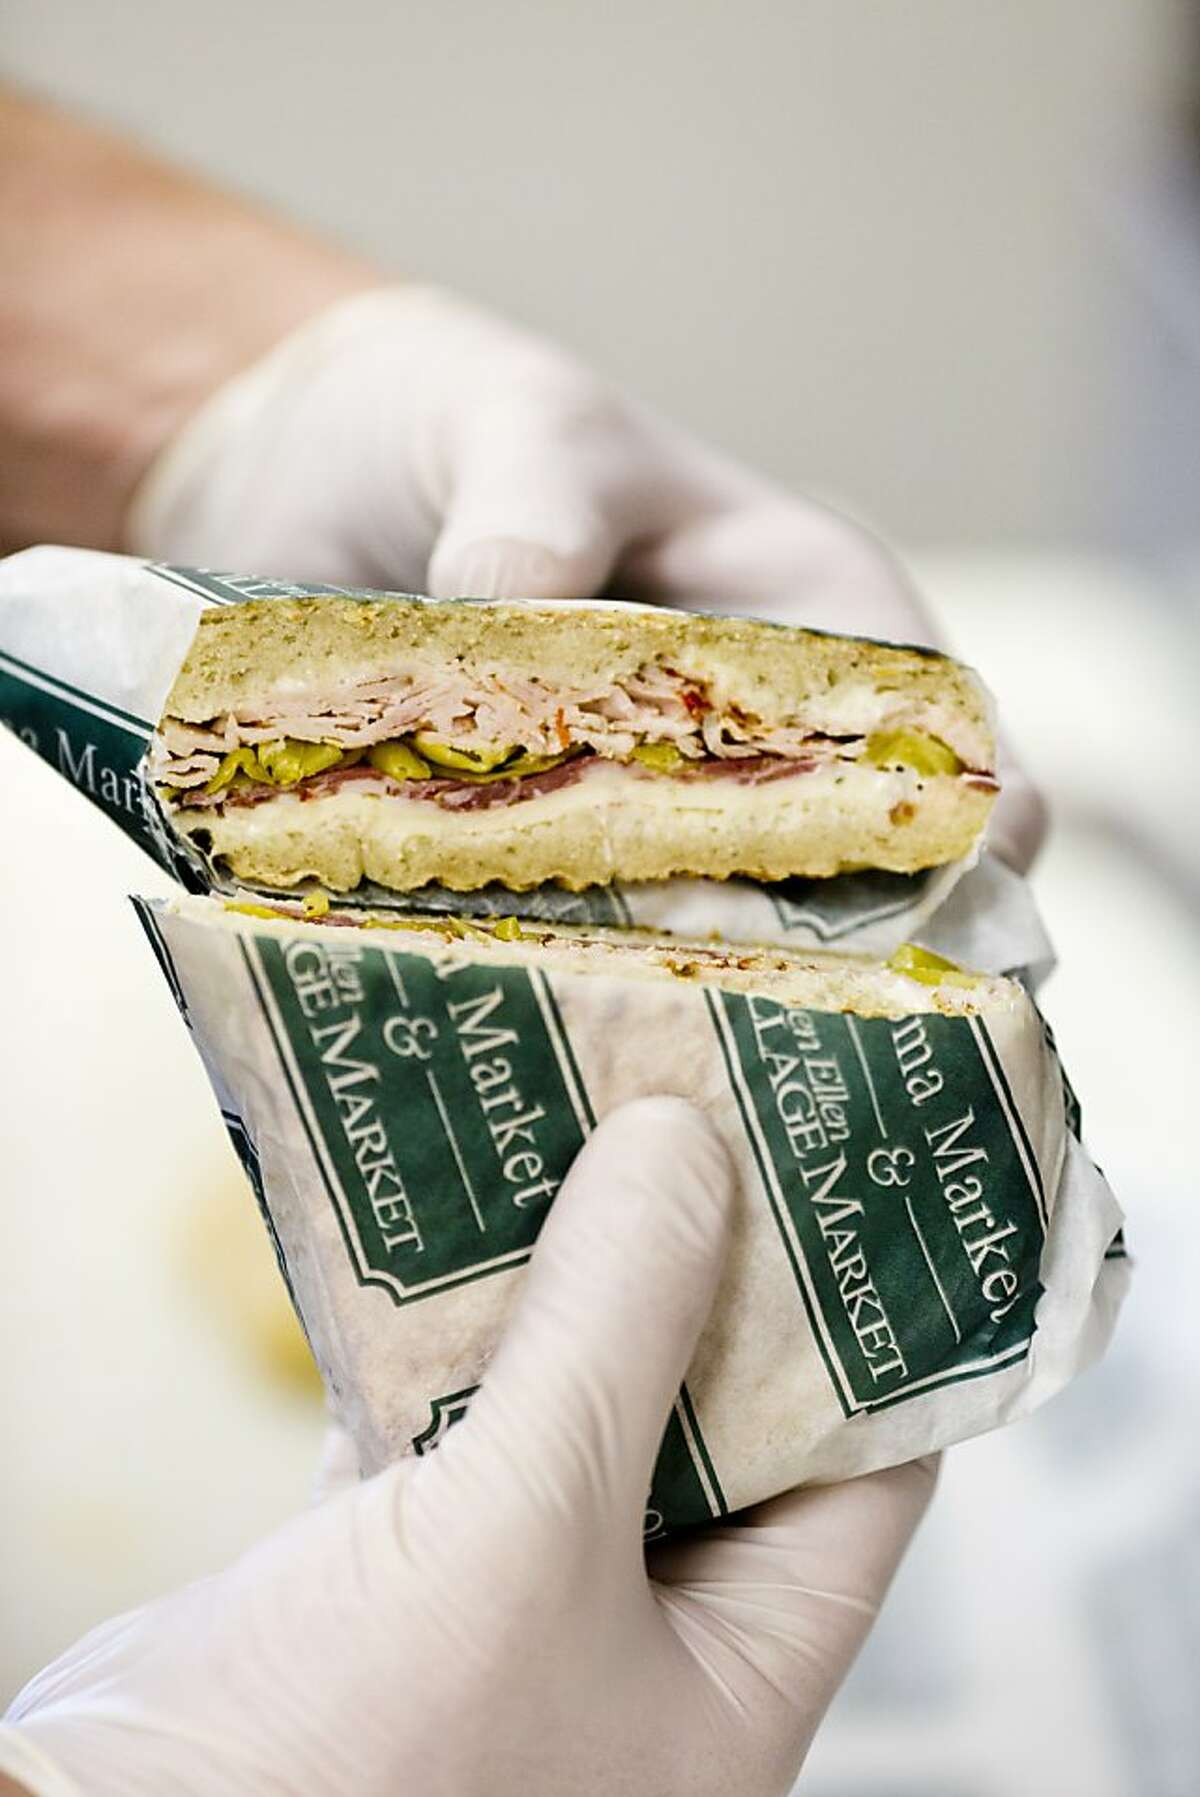 Paninis like this are offered at the Glen Ellen Village Market.